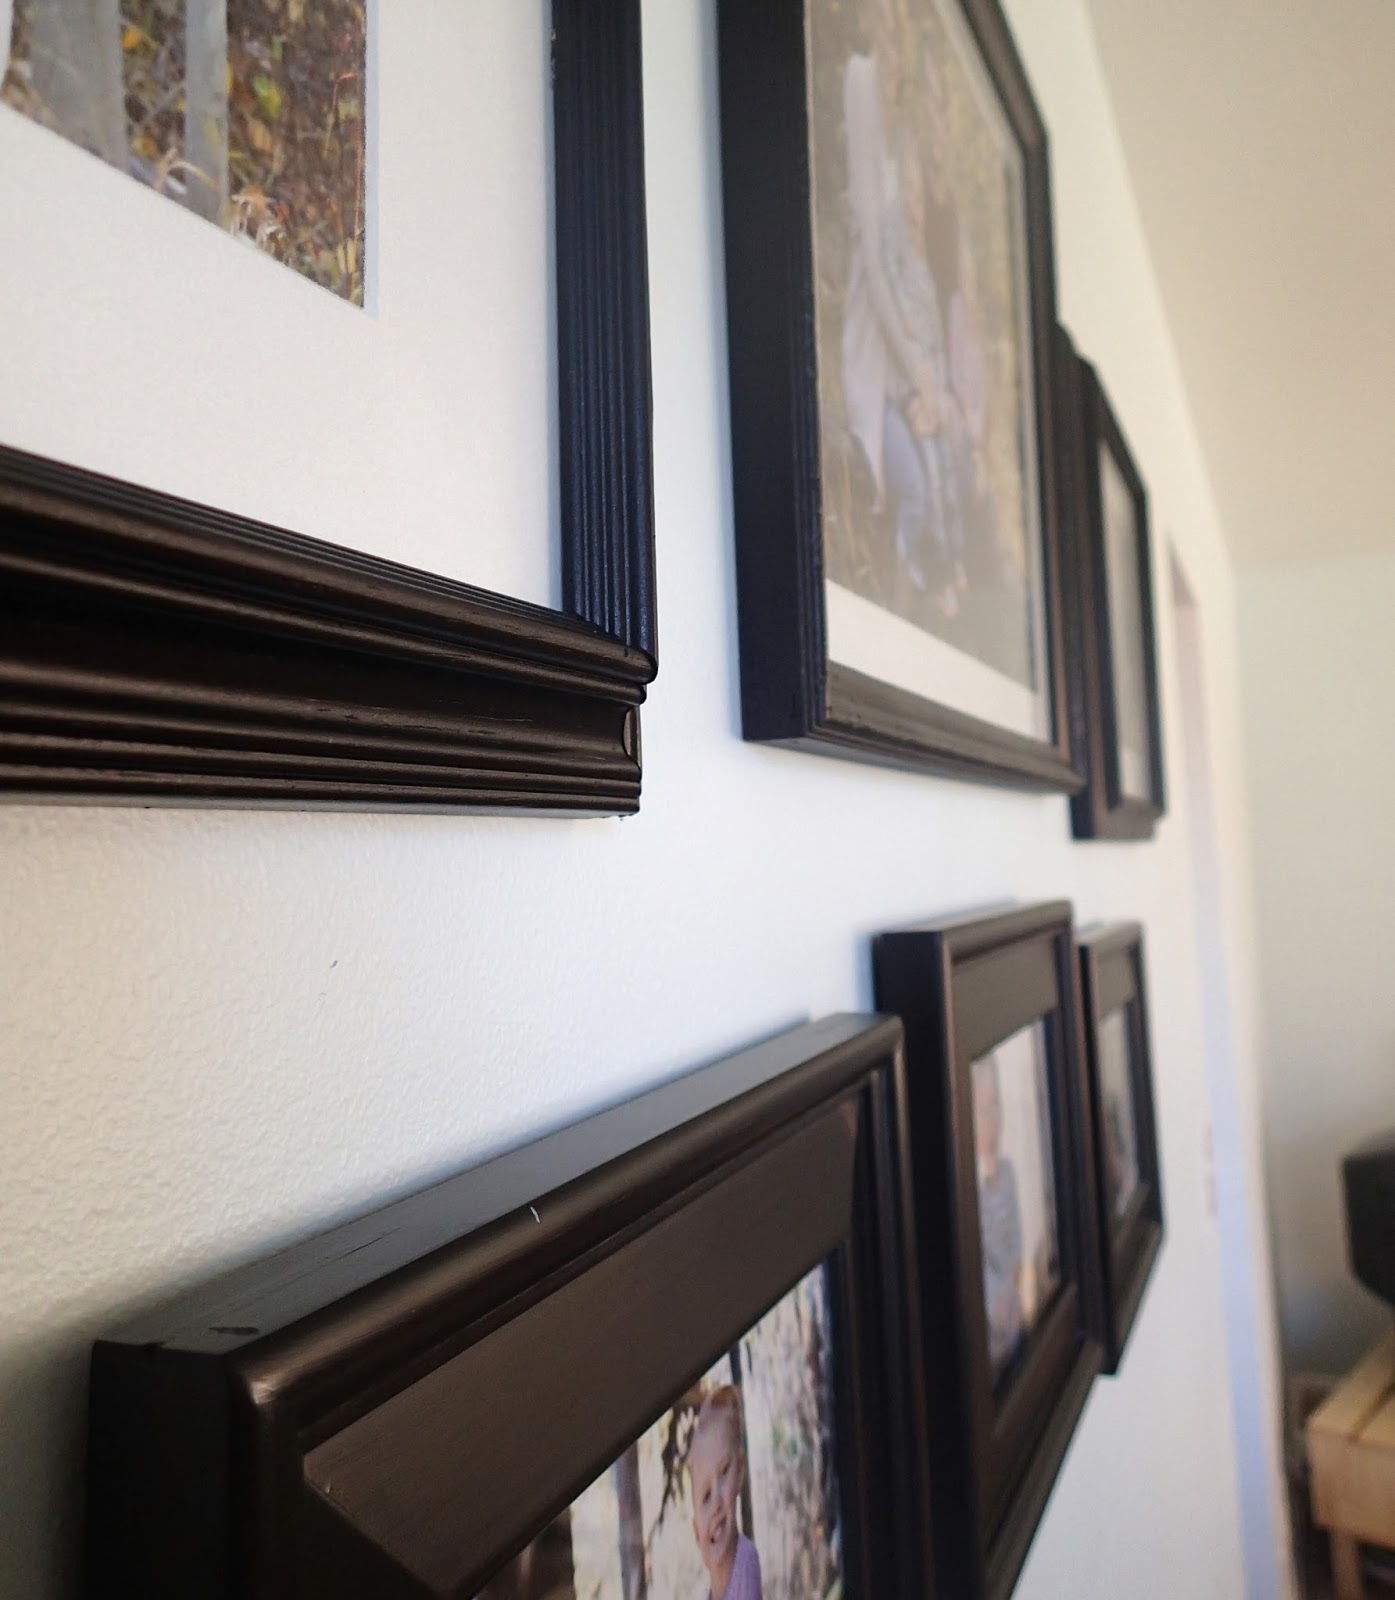 Spray Painting Pictures Frames